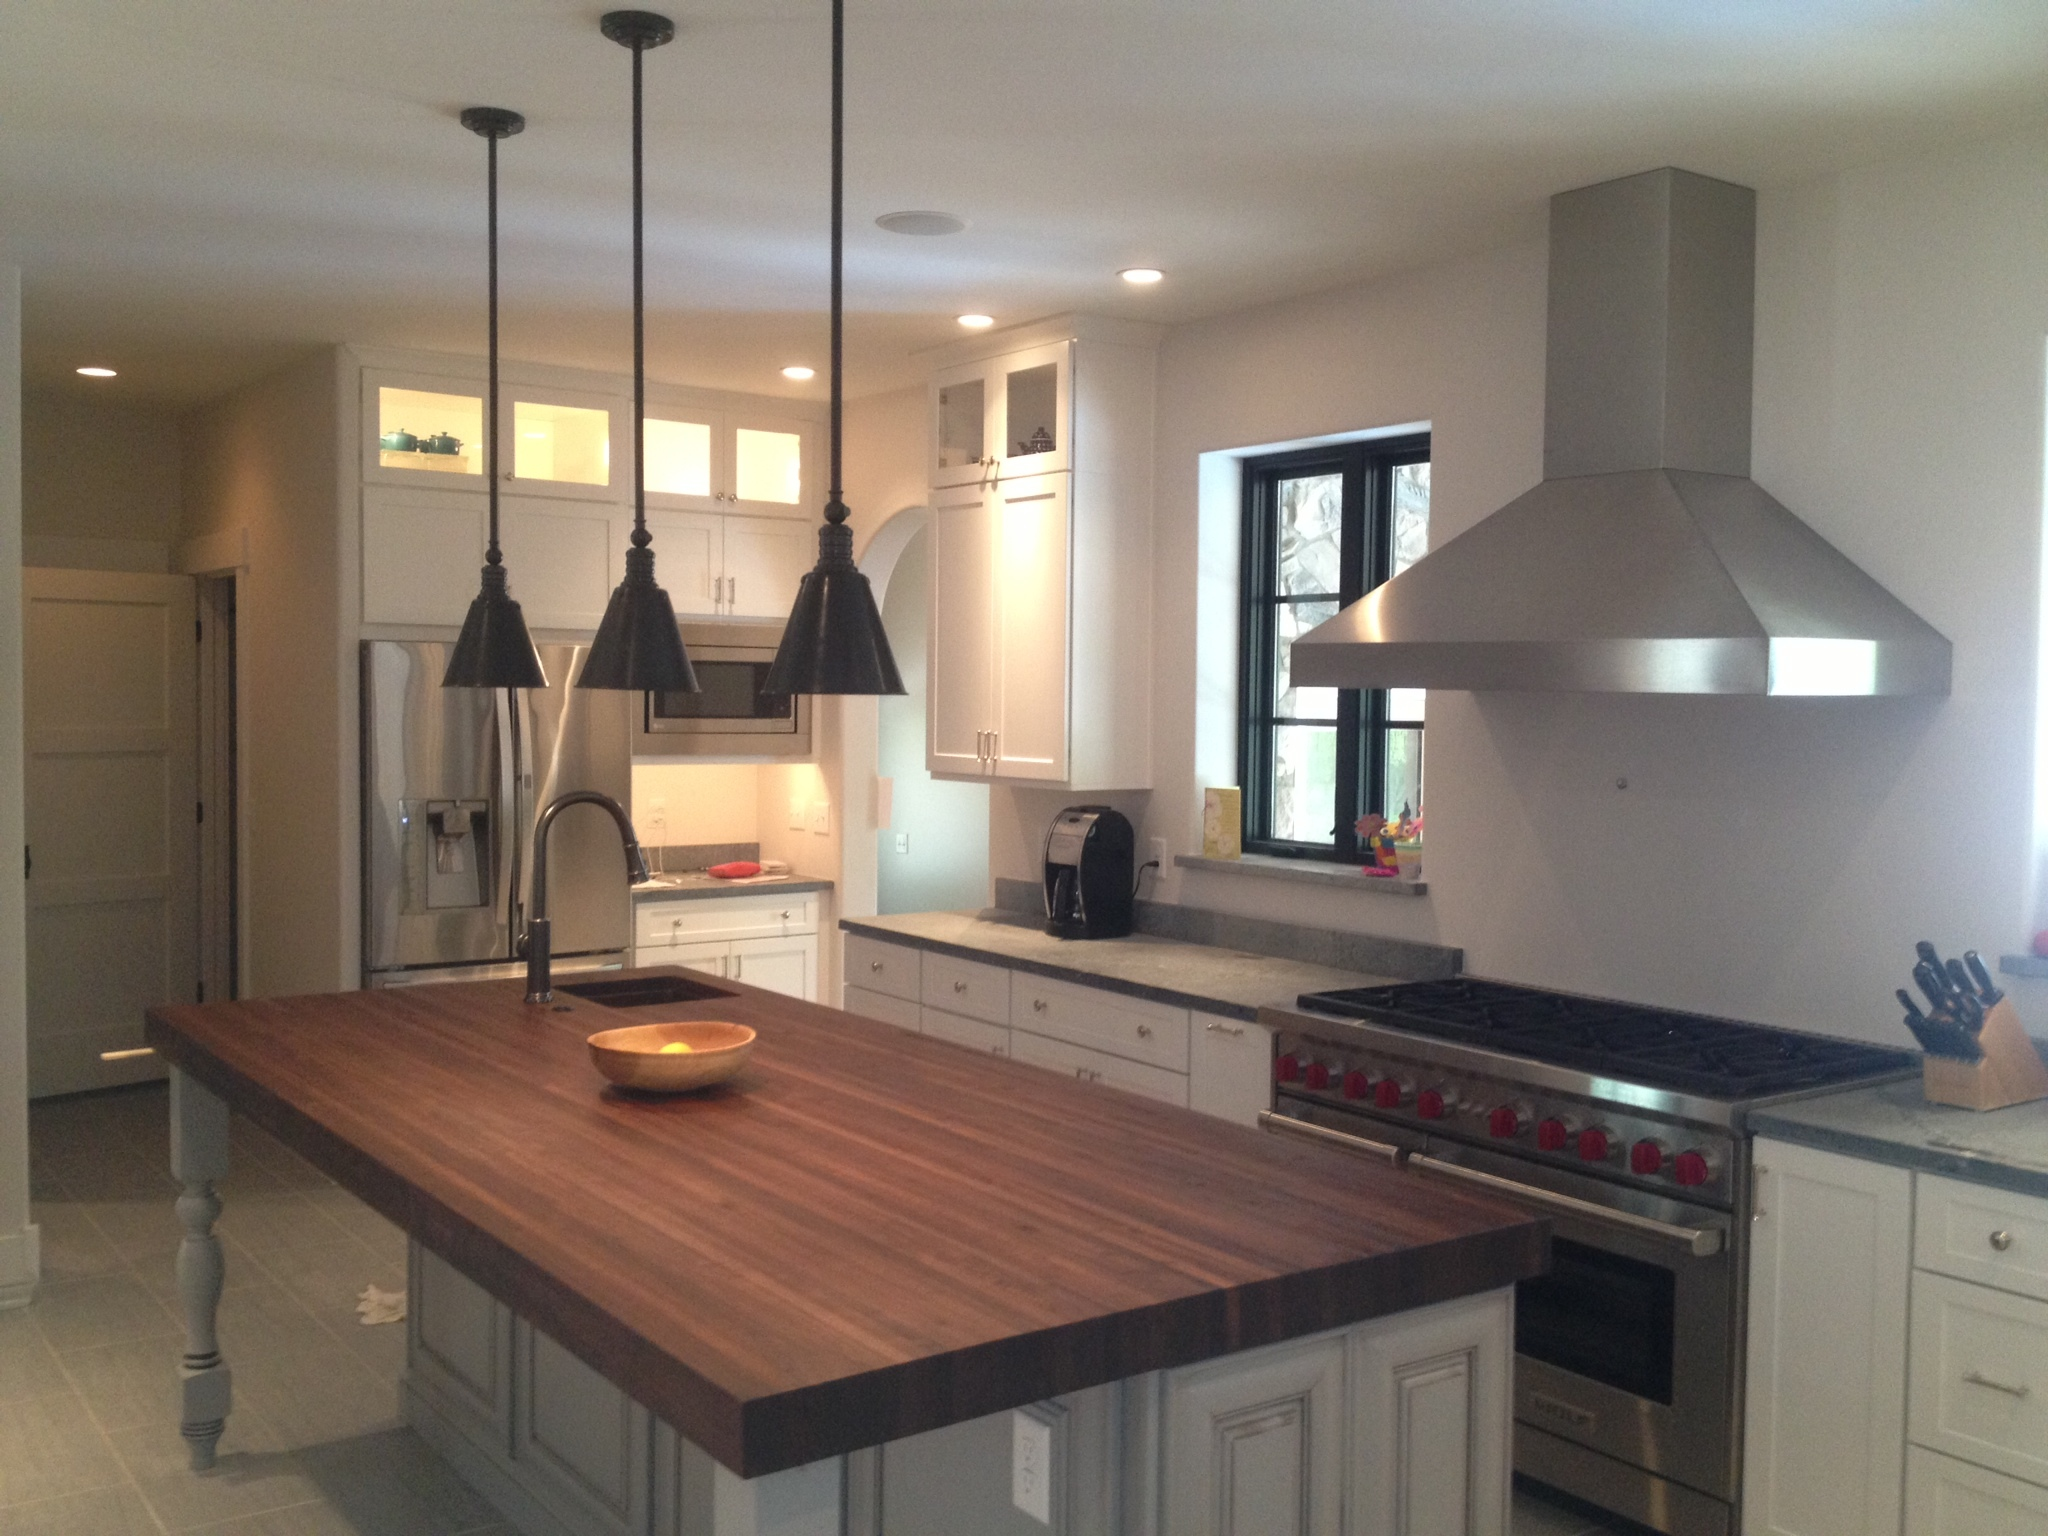 Butcher Block Island Artisan Interiors And Builders